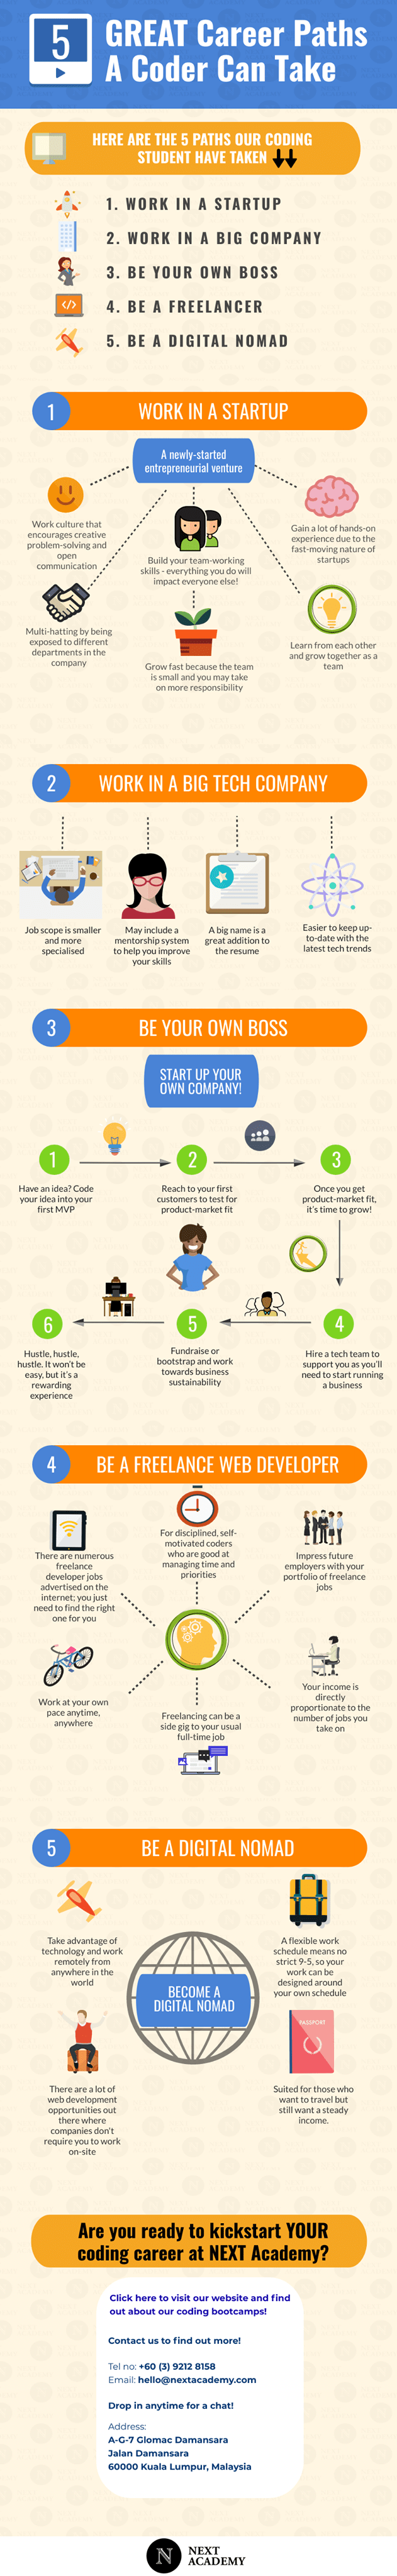 5 great career paths a coder can take infographic